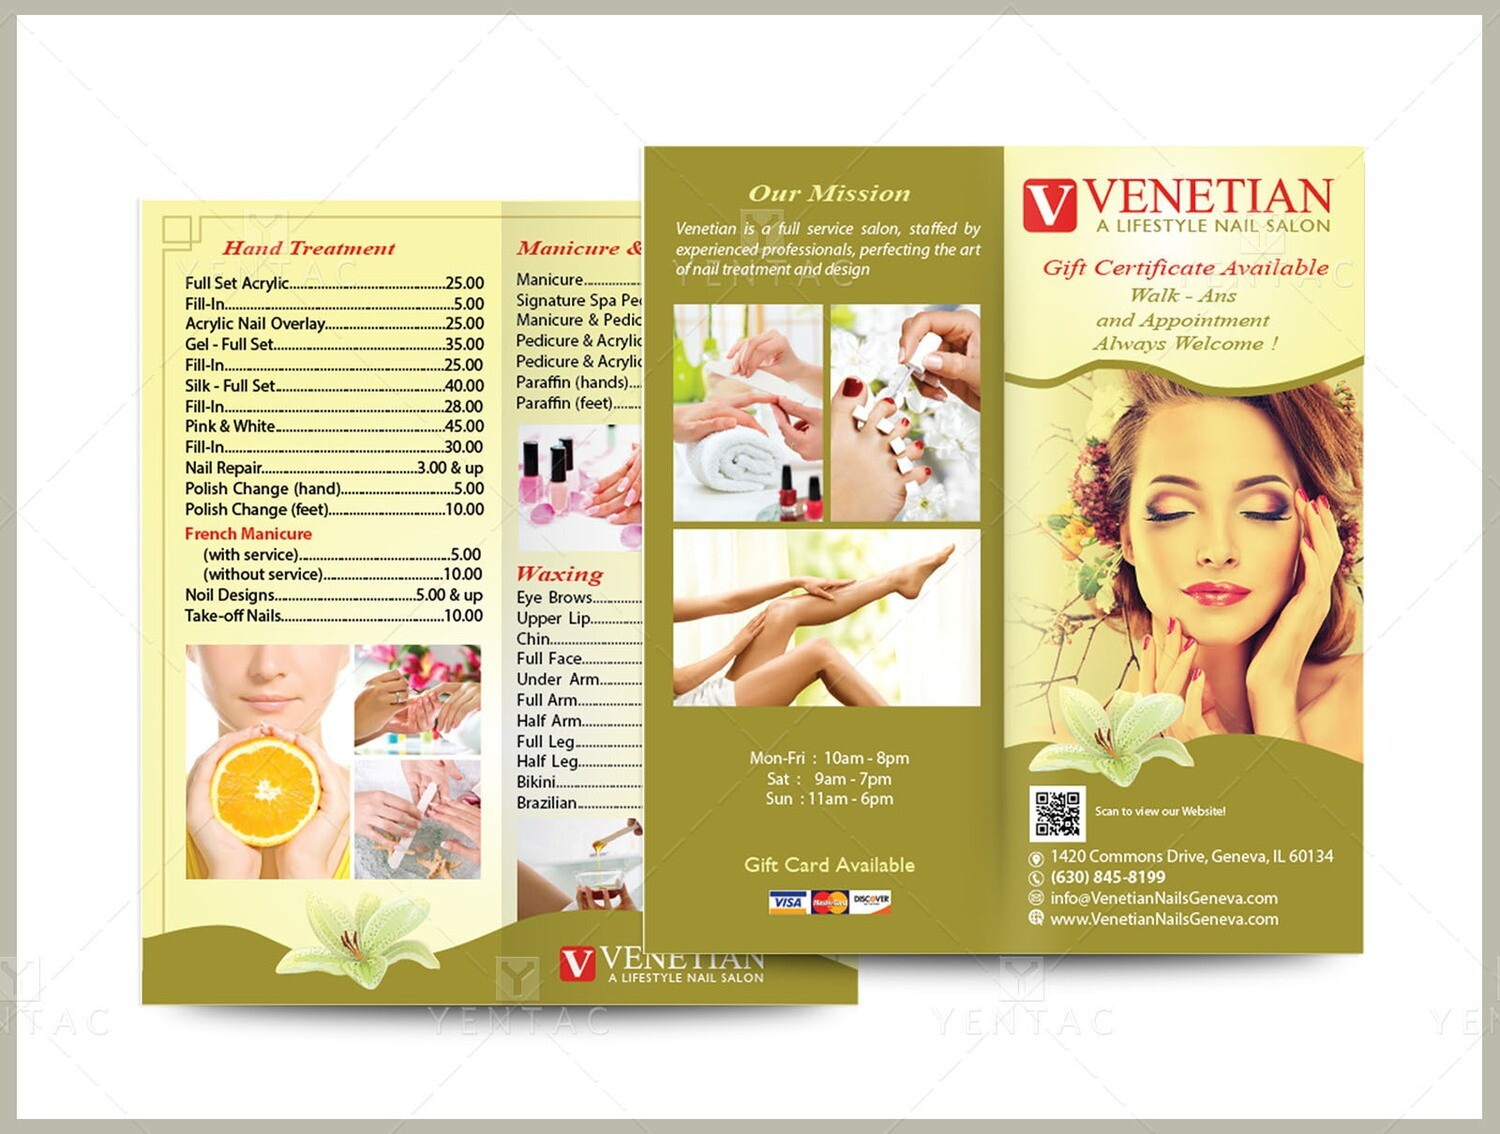 04.3 - Menu Take Out - Double Fold Size 8.5x7.5 - Venetian Nails Spa #5051 Salon